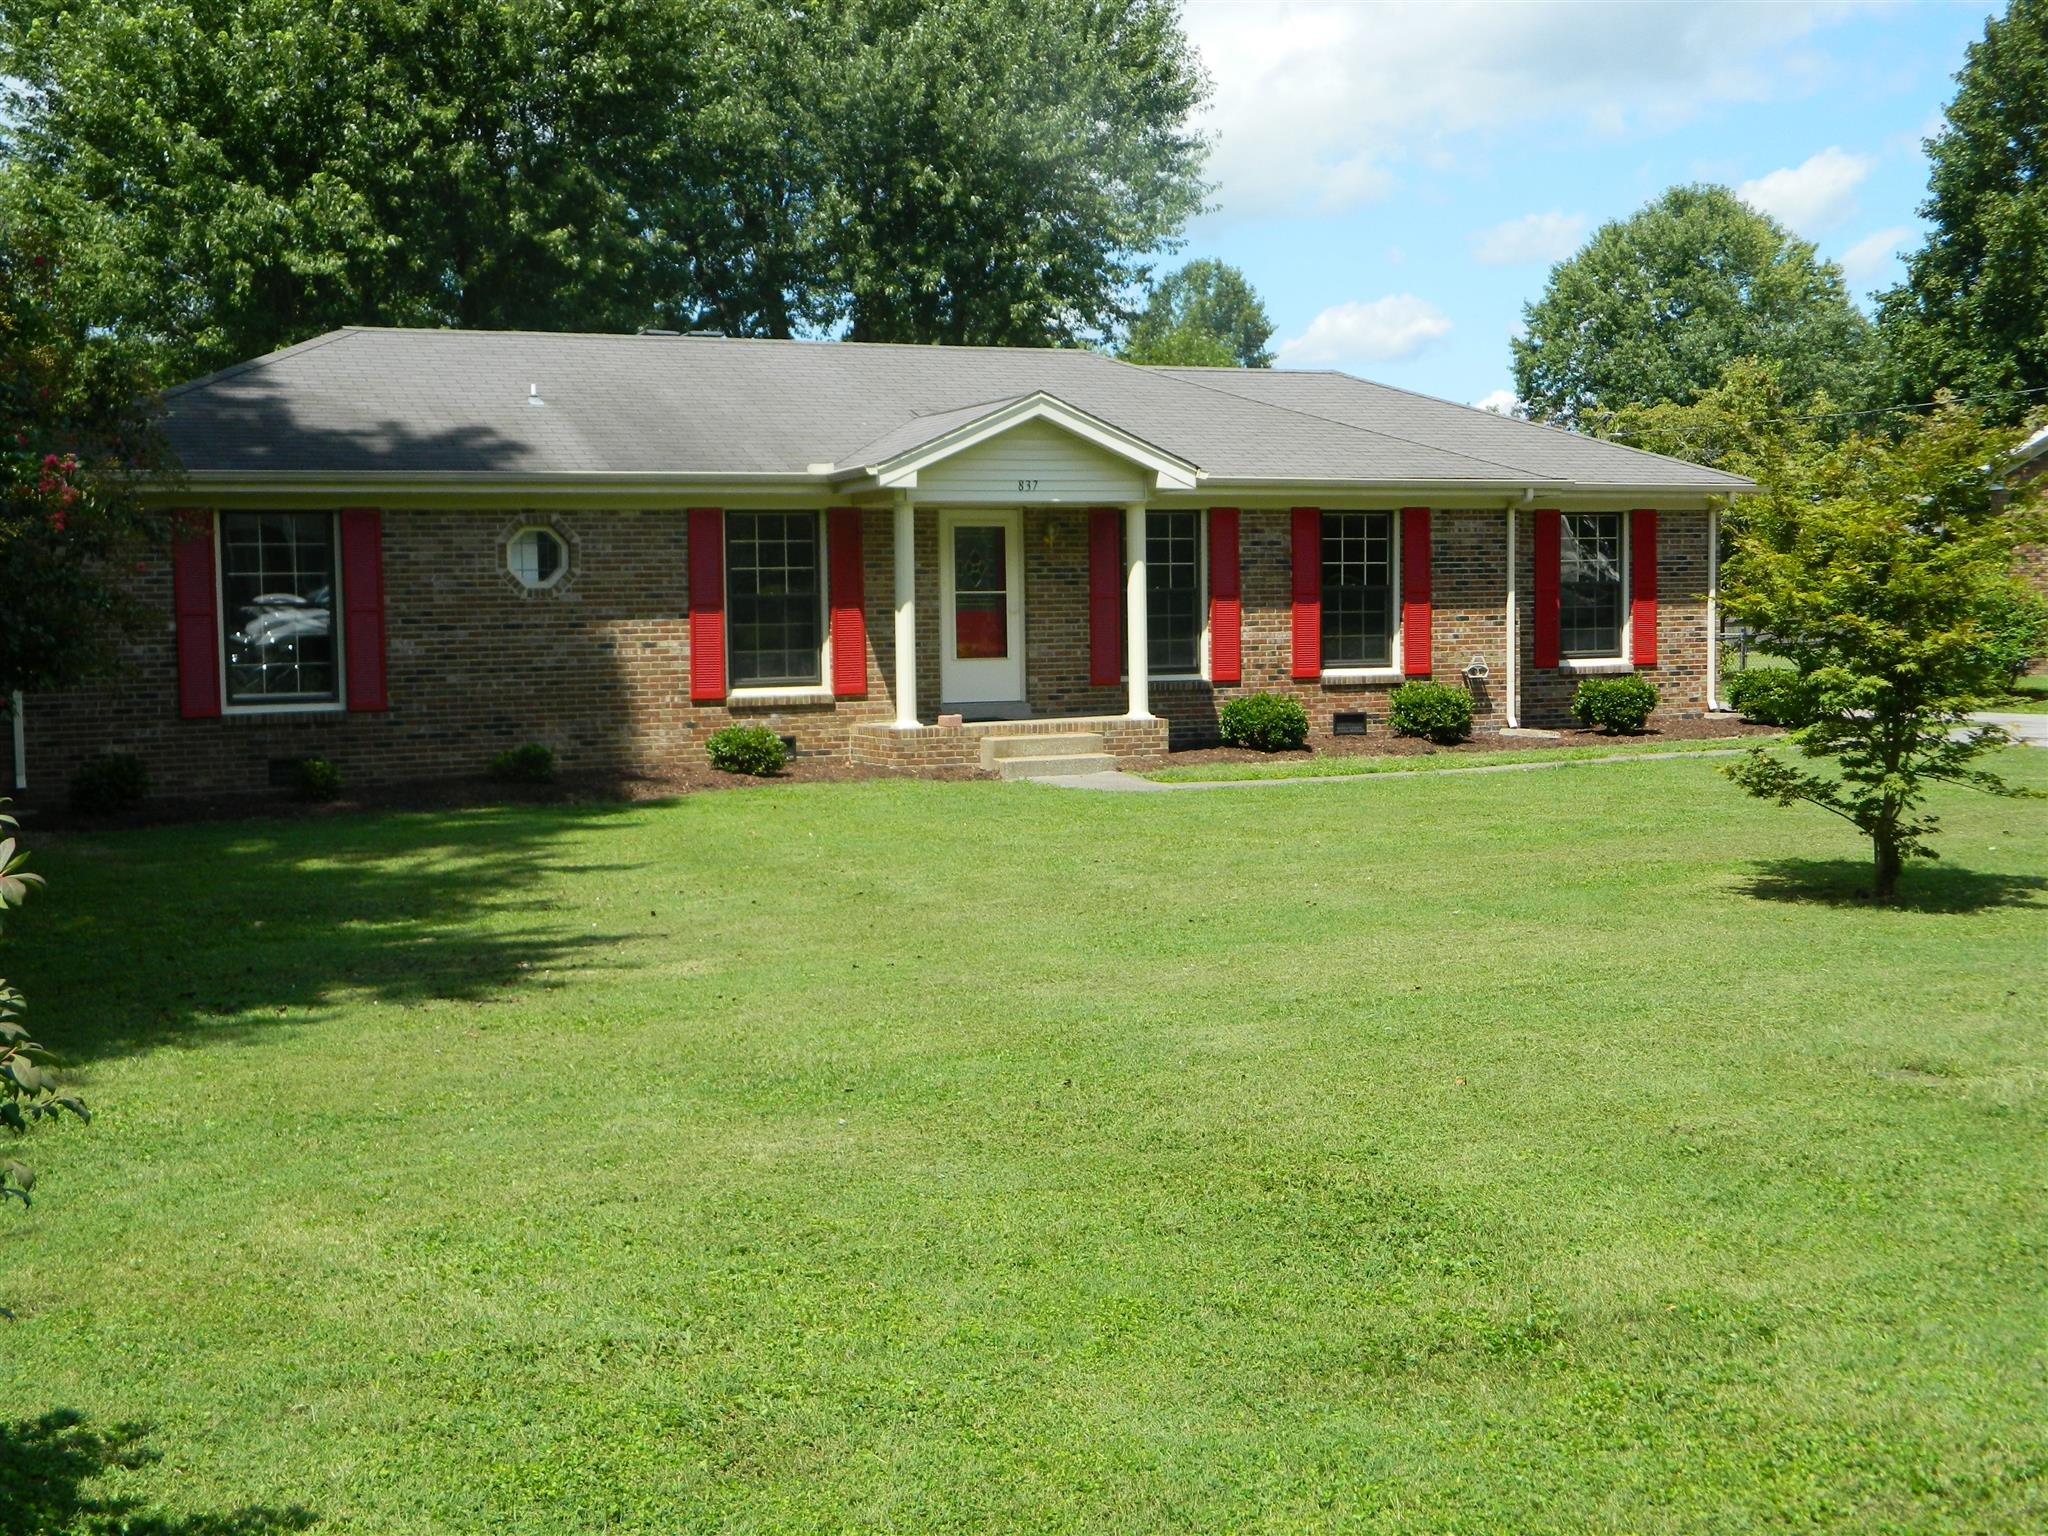 837 Britton Ave, Gallatin, Tennessee